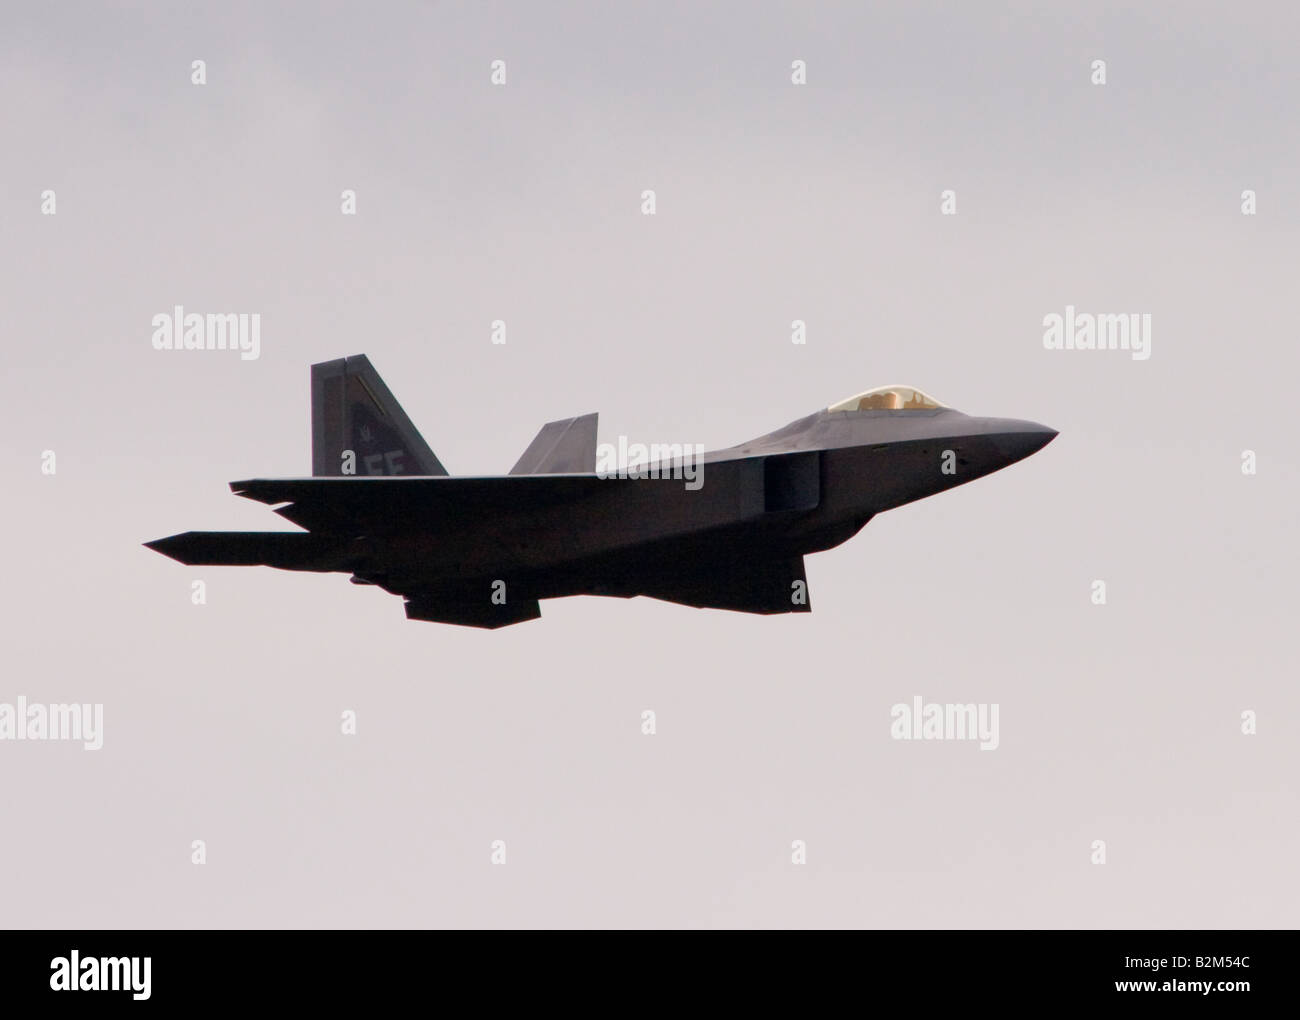 United States Air Force Lockheed Martin F 22A Raptor jet fighter dispaying at the Farnborough Airshow 2008 - Stock Image